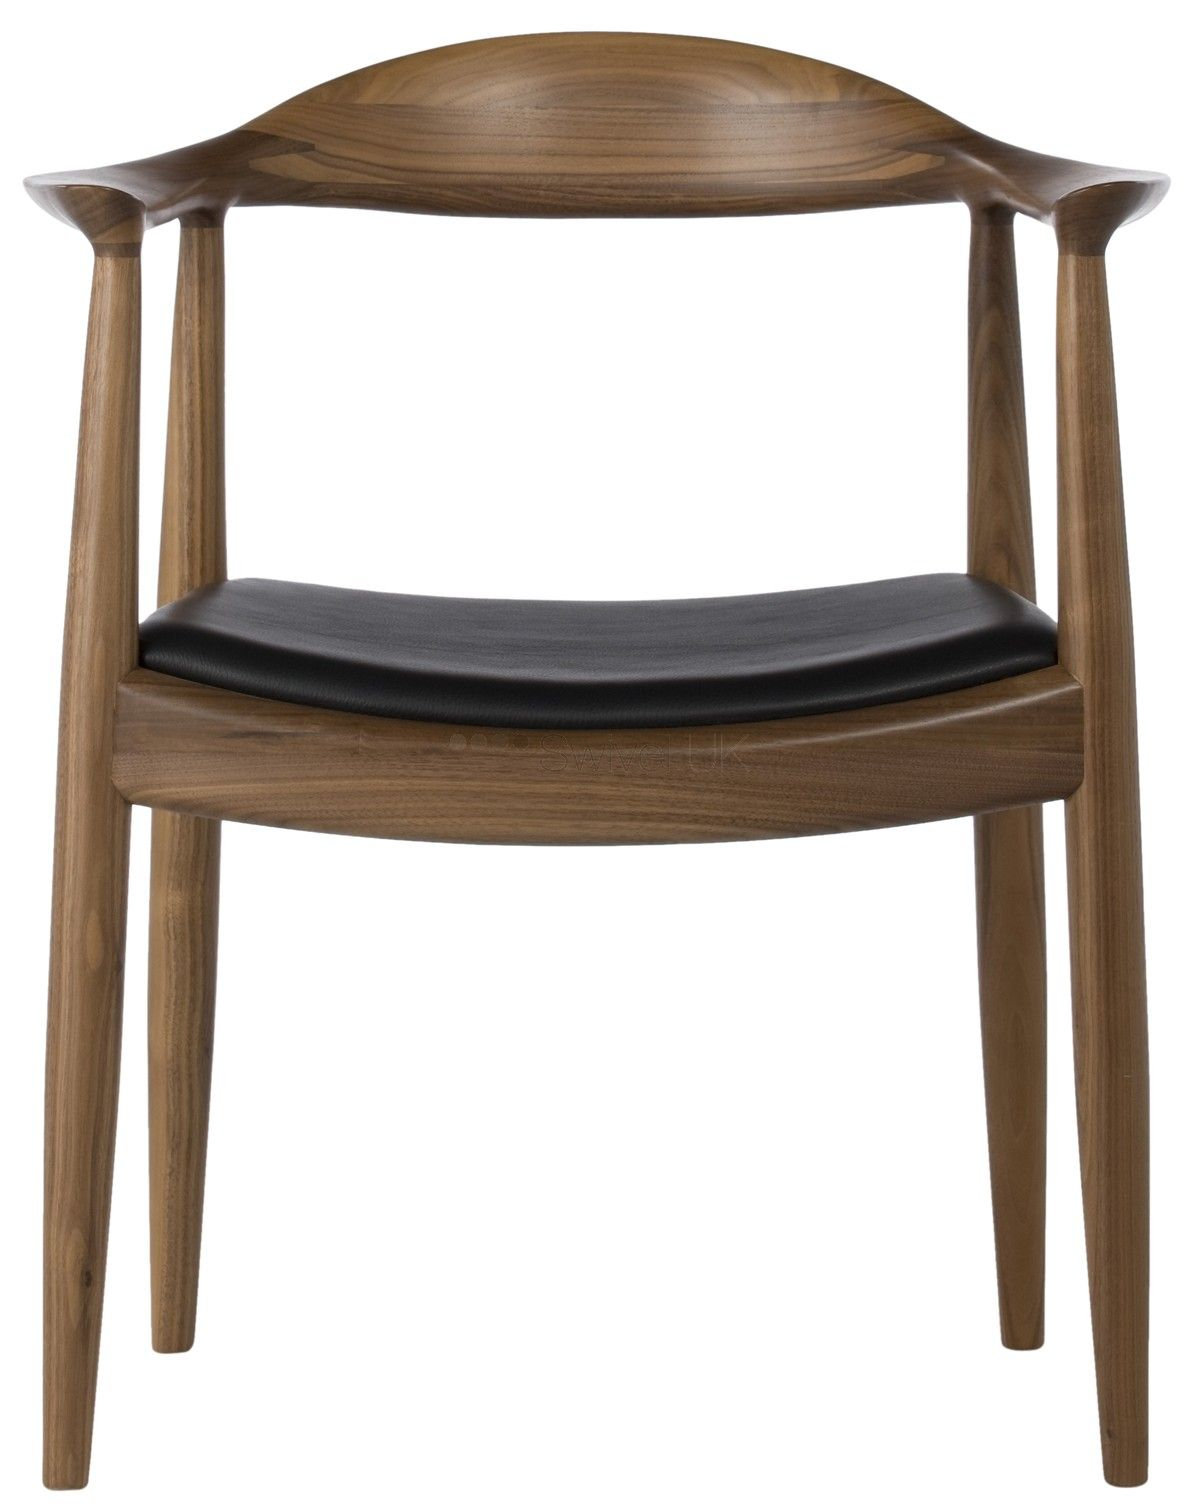 The chair round chair by hans wegner - The Beautiful Hans Wagner Thee Round One Or The Chair 11 Beautiful